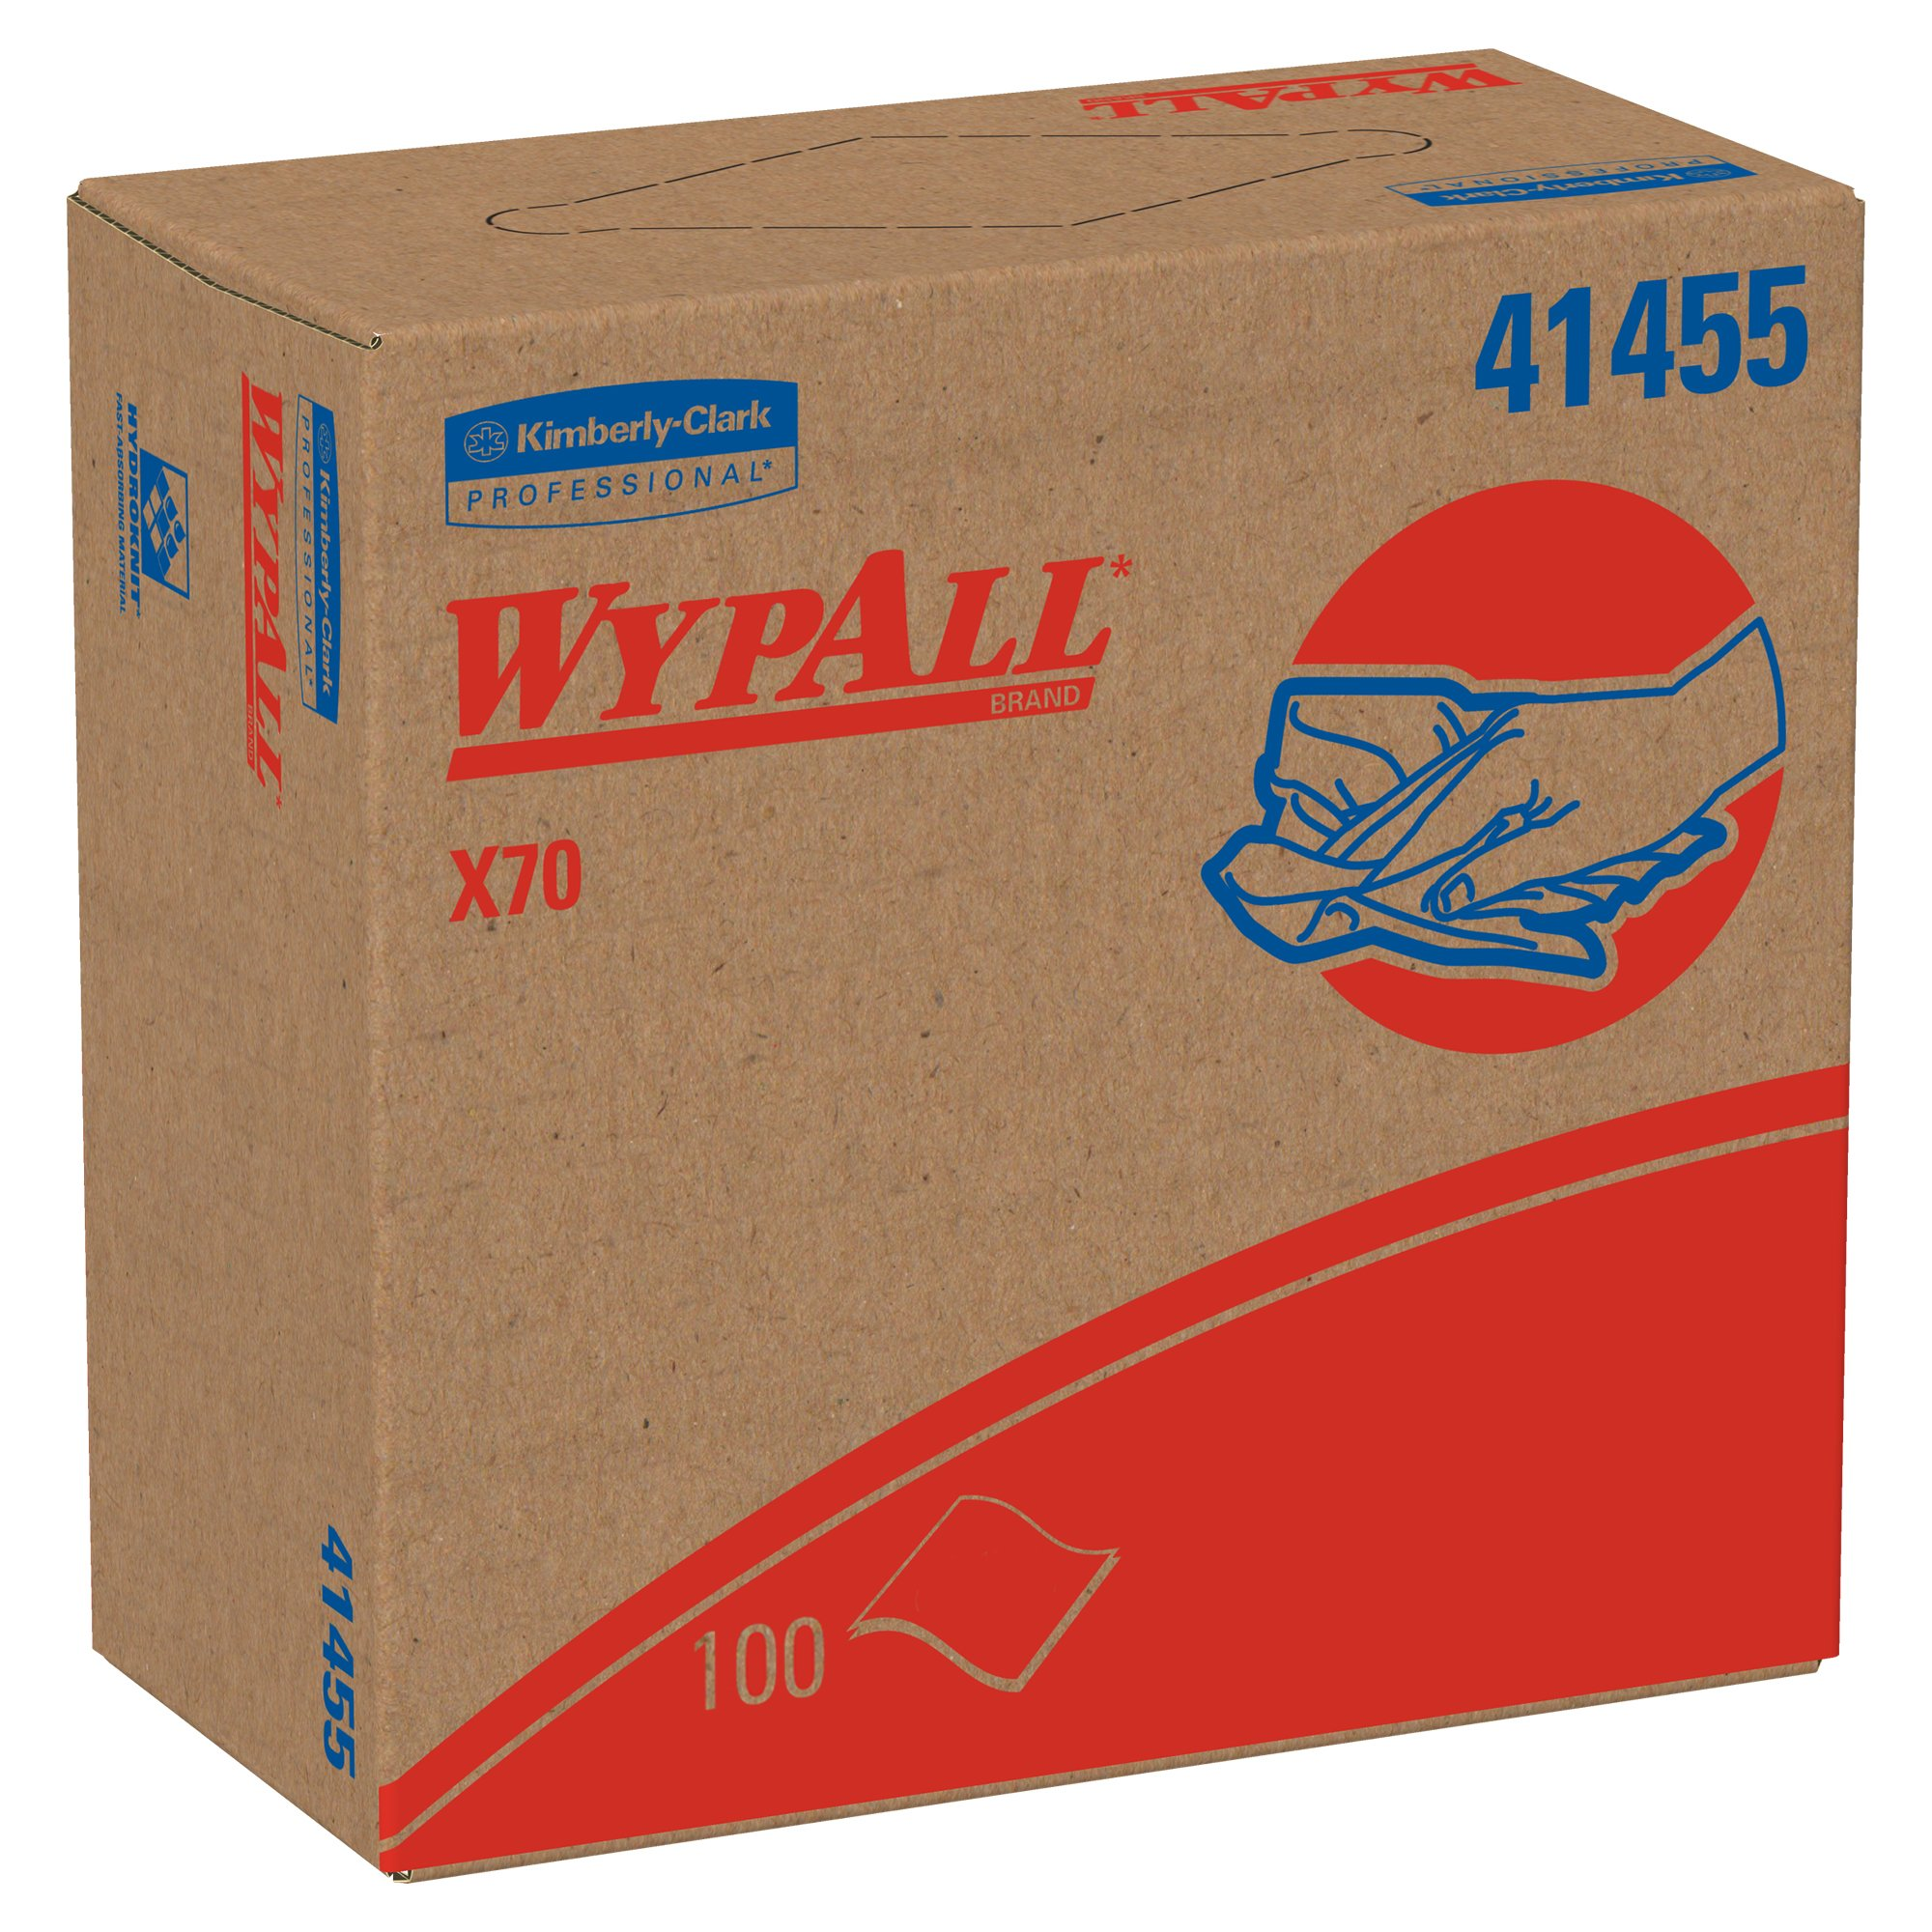 KIM41455 - WypAll X70 WorkHorse Manufactured Rags in a Pop Up Box